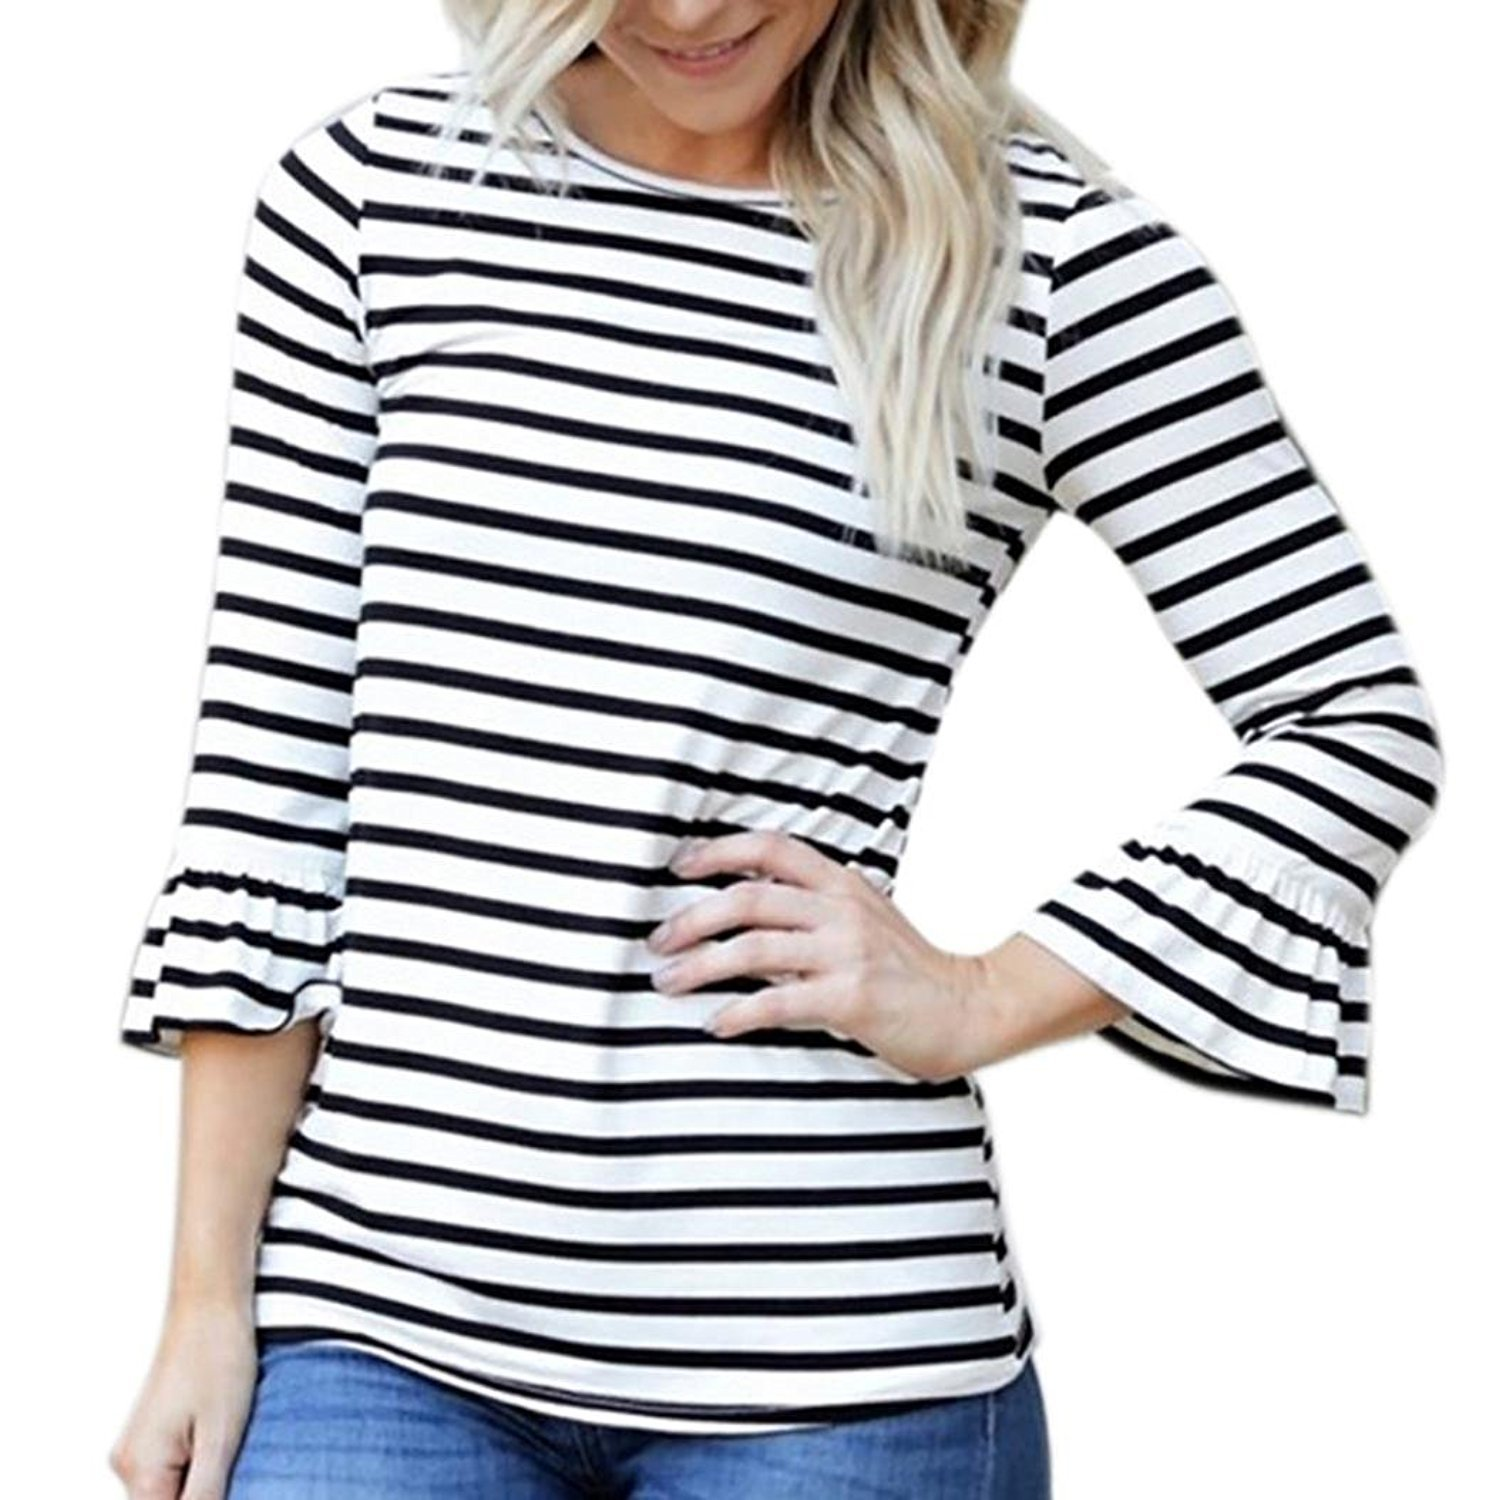 Autumn&Winter Clothing,Fulltime(TM) Women Plus Size Loose Pullover Flare Sleeve Stripe Shirt ZSS70921425